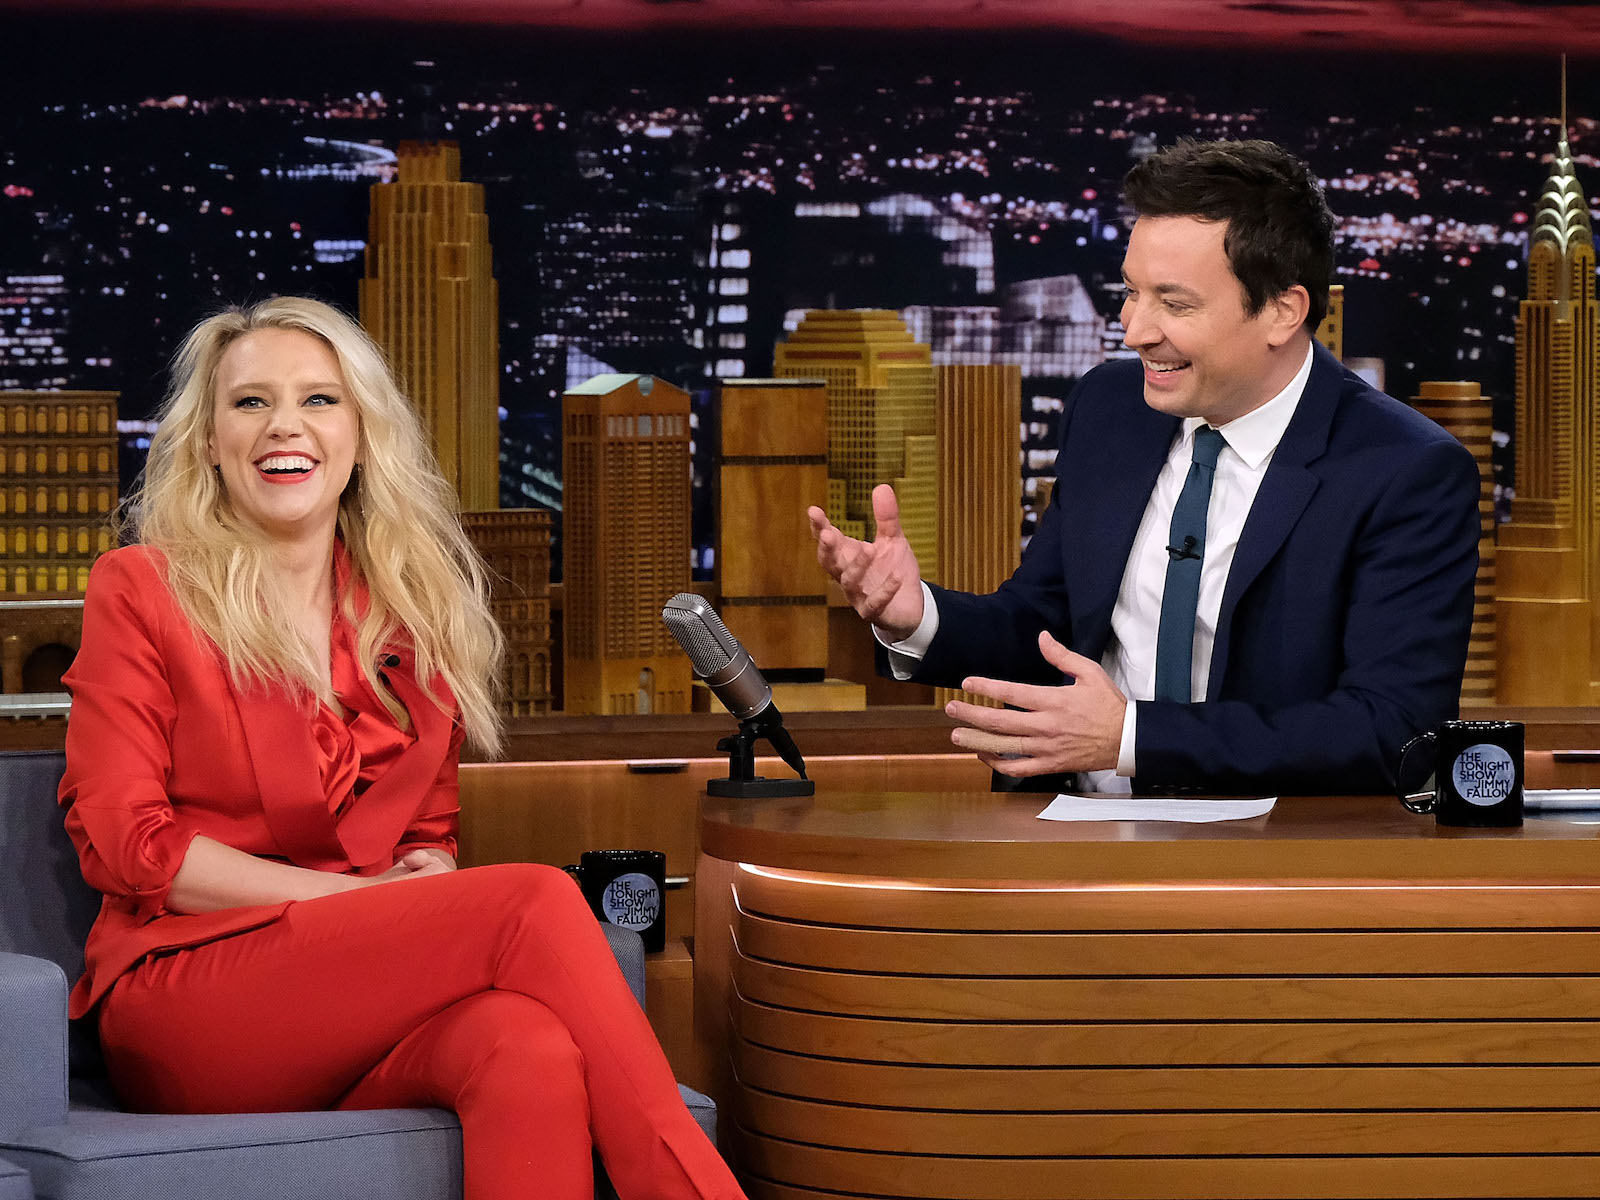 Kate McKinnon Does a Spot-On Screaming Goat Impression